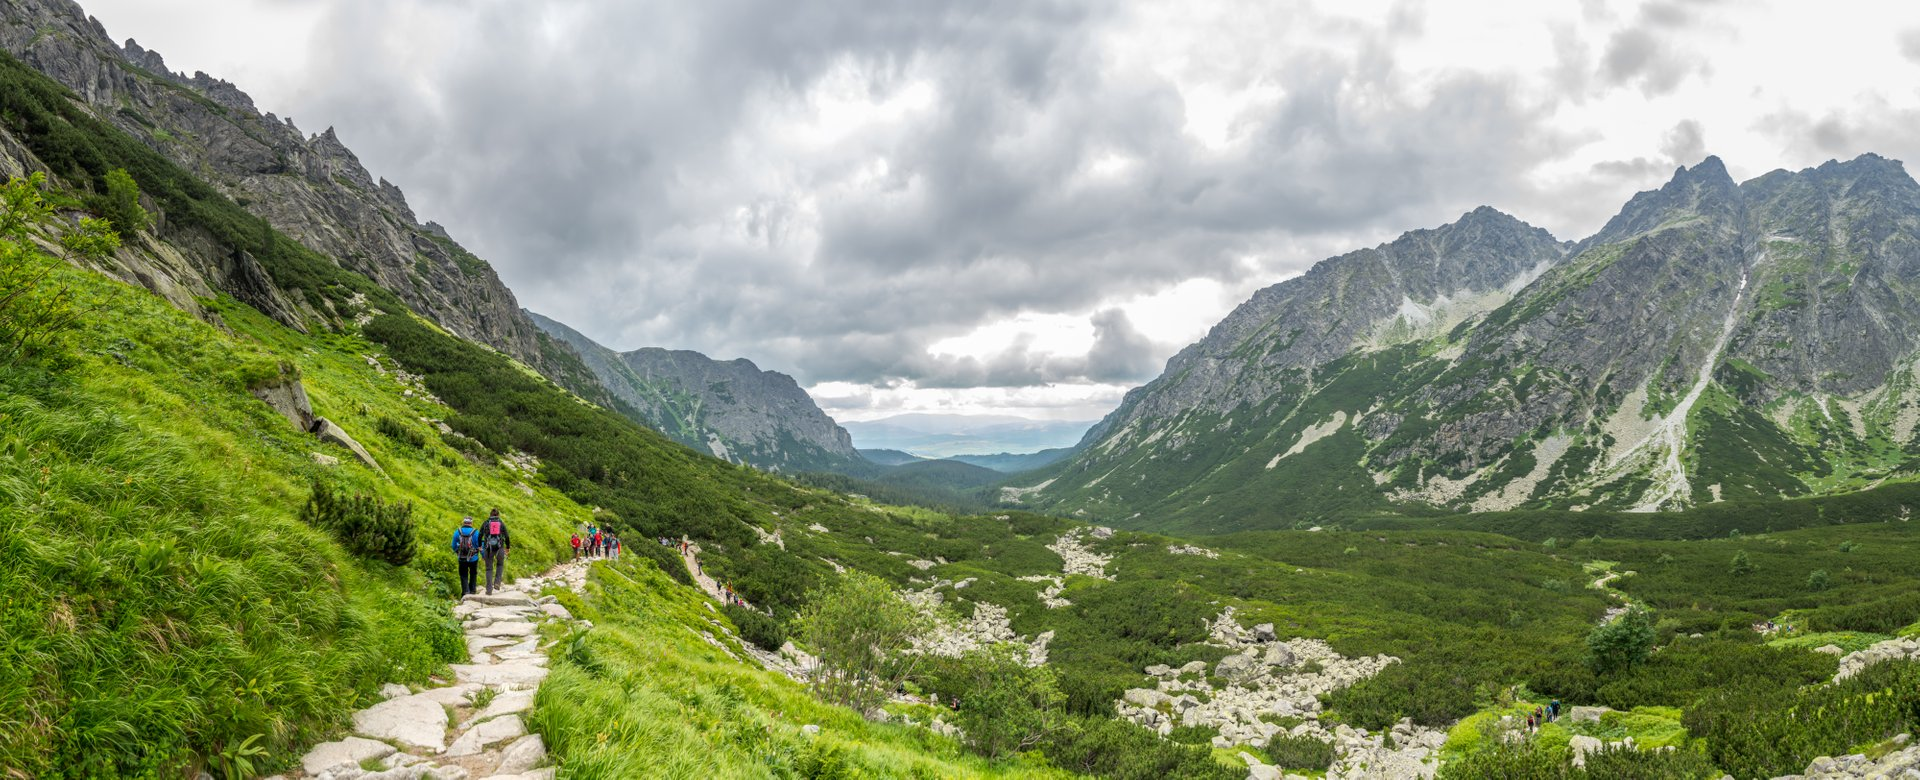 Best time to see Hiking in the Tatra Mountains in Slovakia 2019